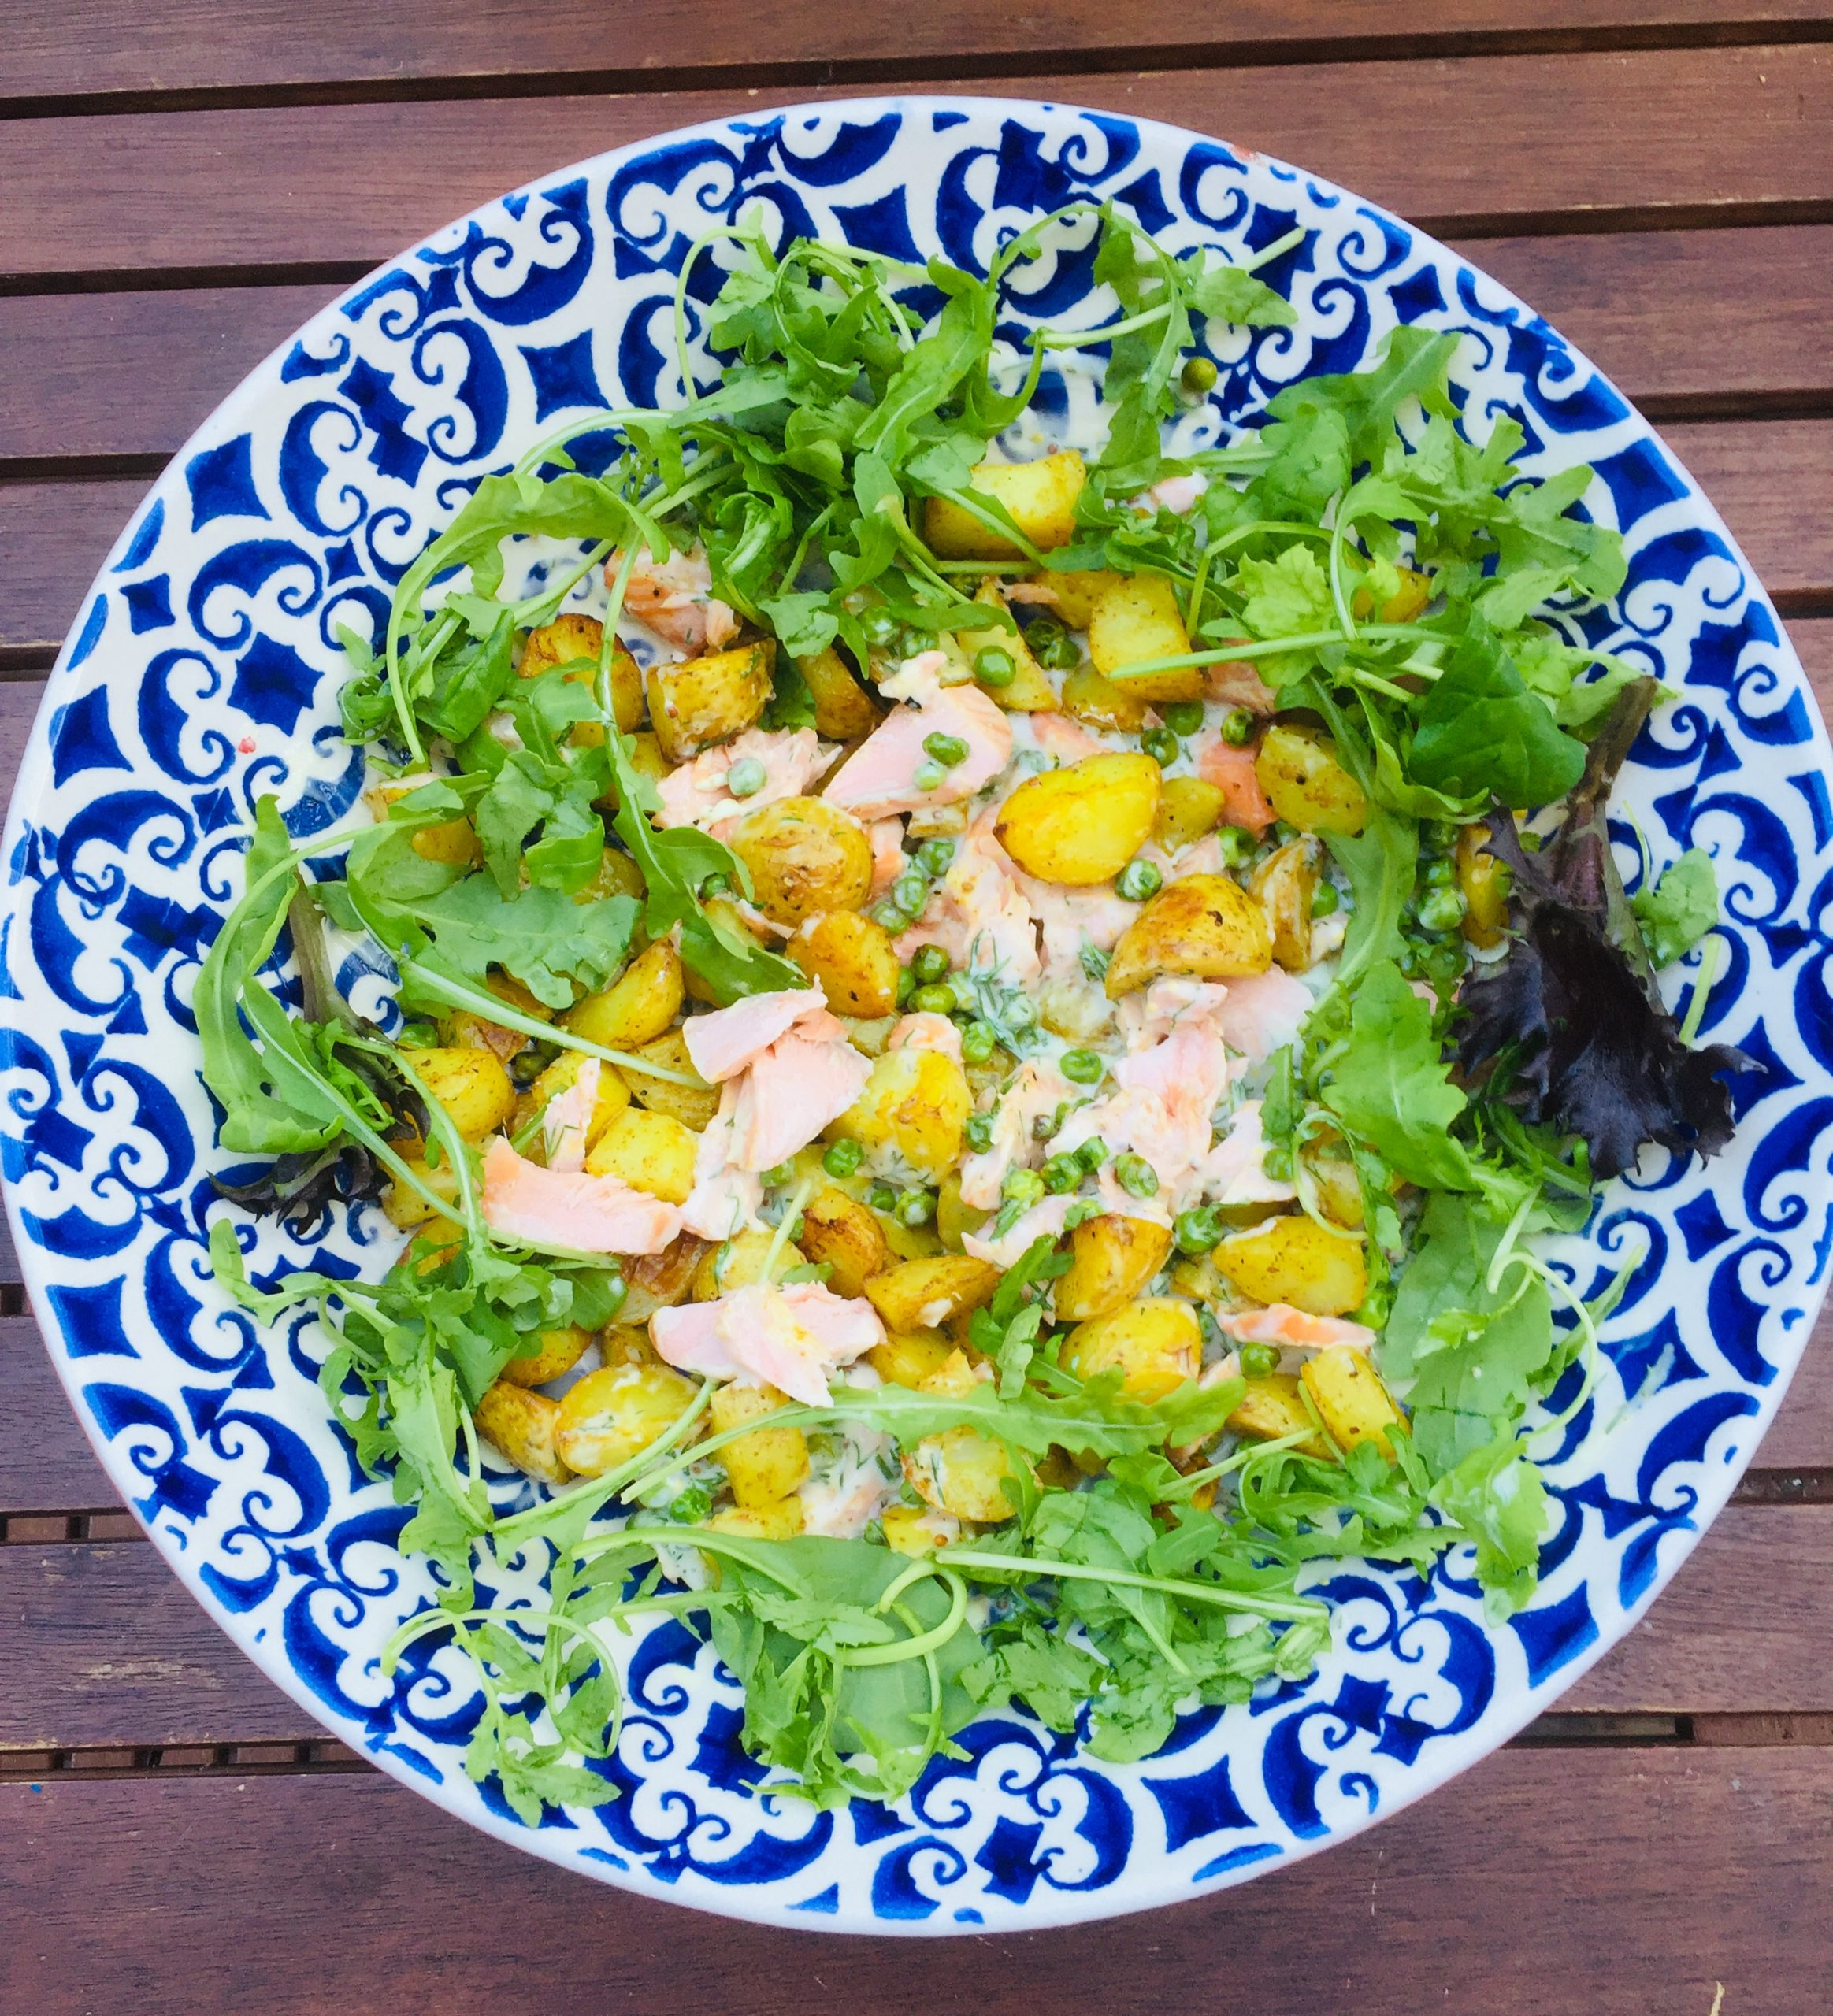 Salmon & pea salad with a creamy dill dressing